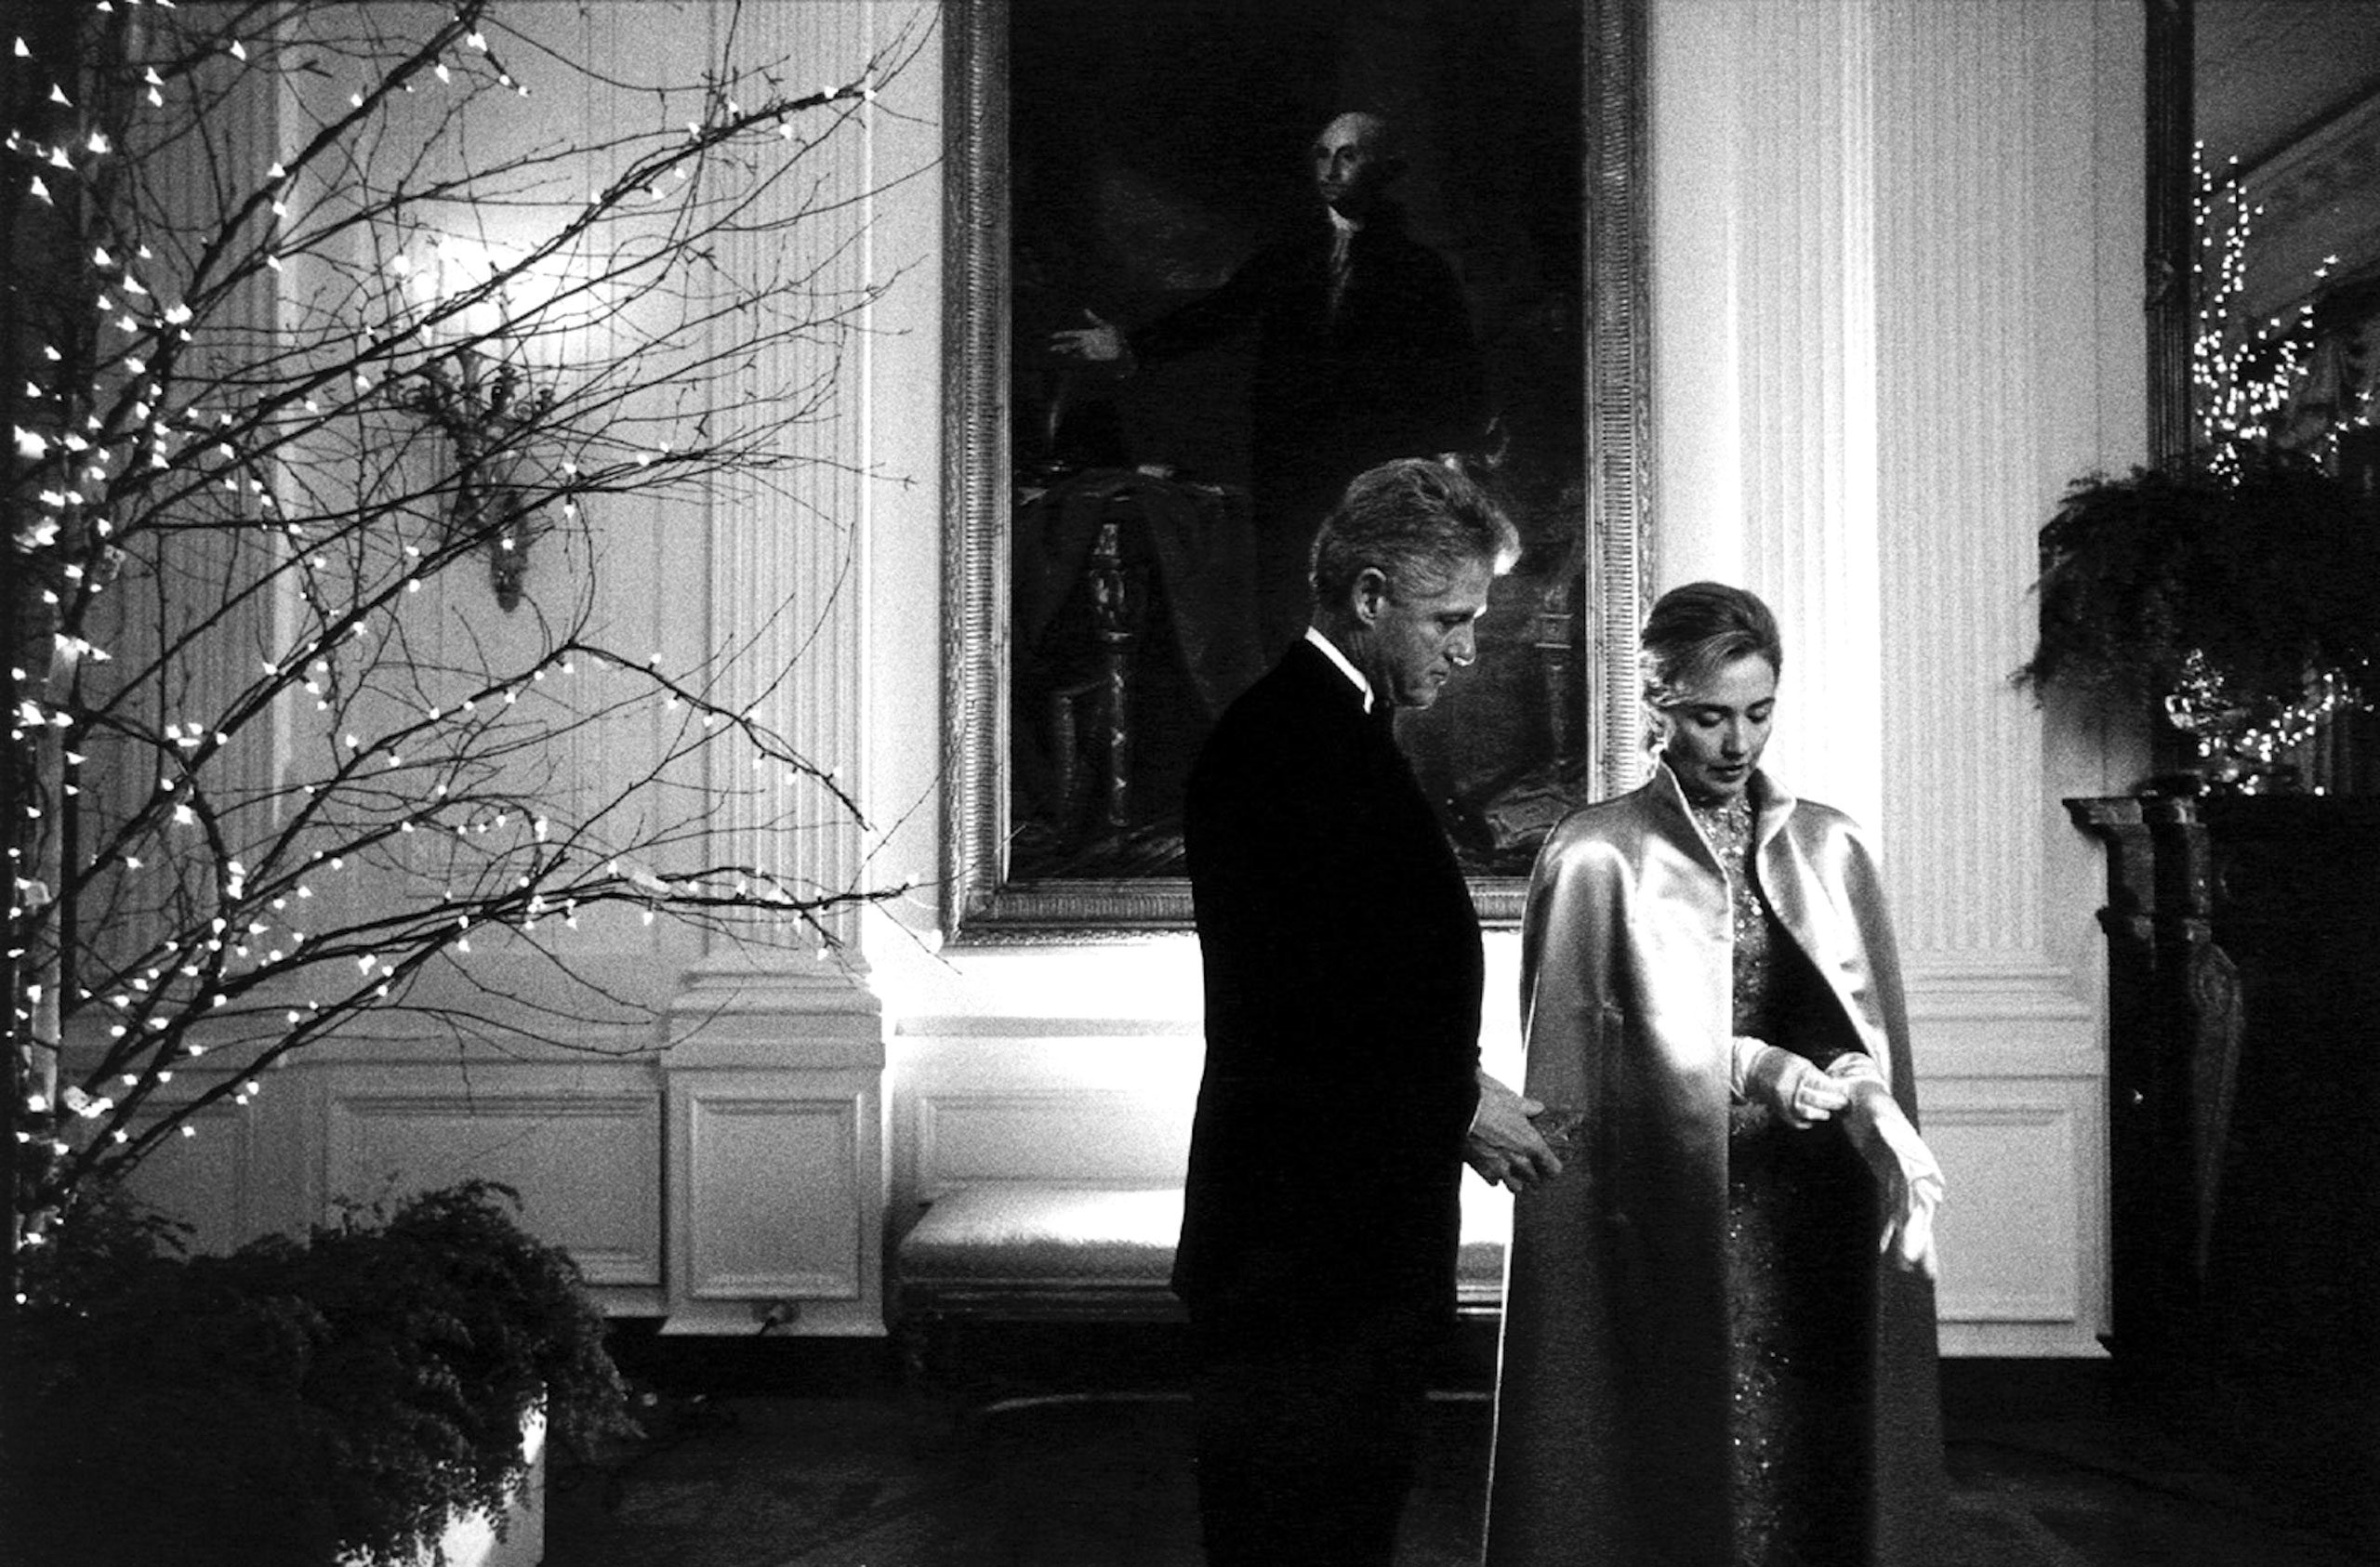 President Bill Clinton and First Lady Hillary Rodham Clinton prepare for a formal portrait in the East Room of the White House on the evening of the President's second inauguration, Jan. 20, 1997.